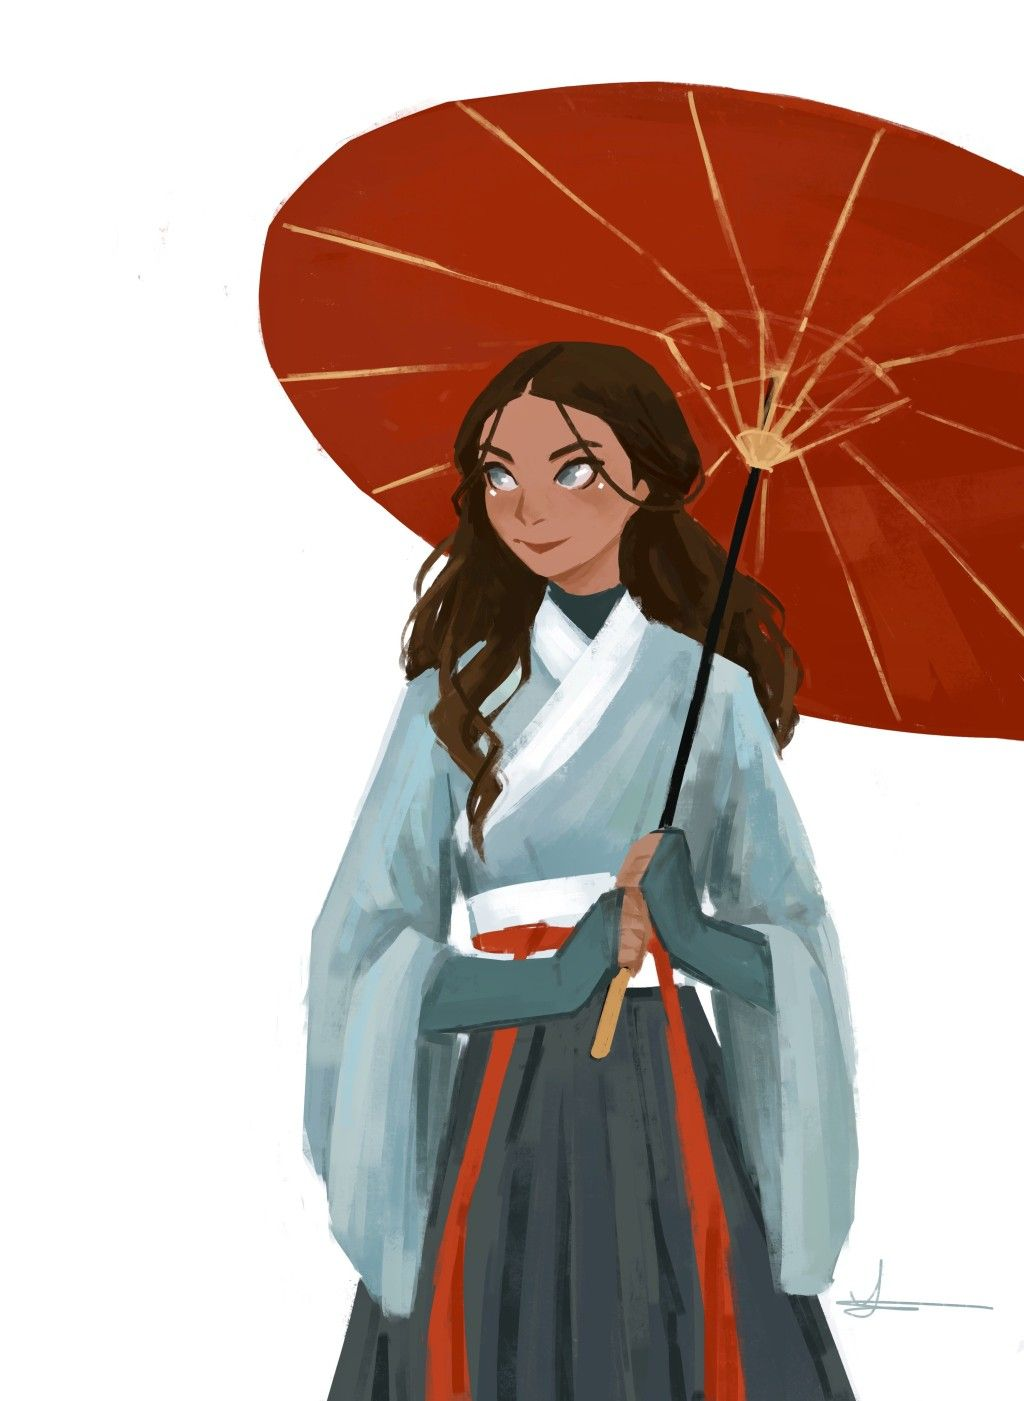 Katara in a Lovely Traditional Dress